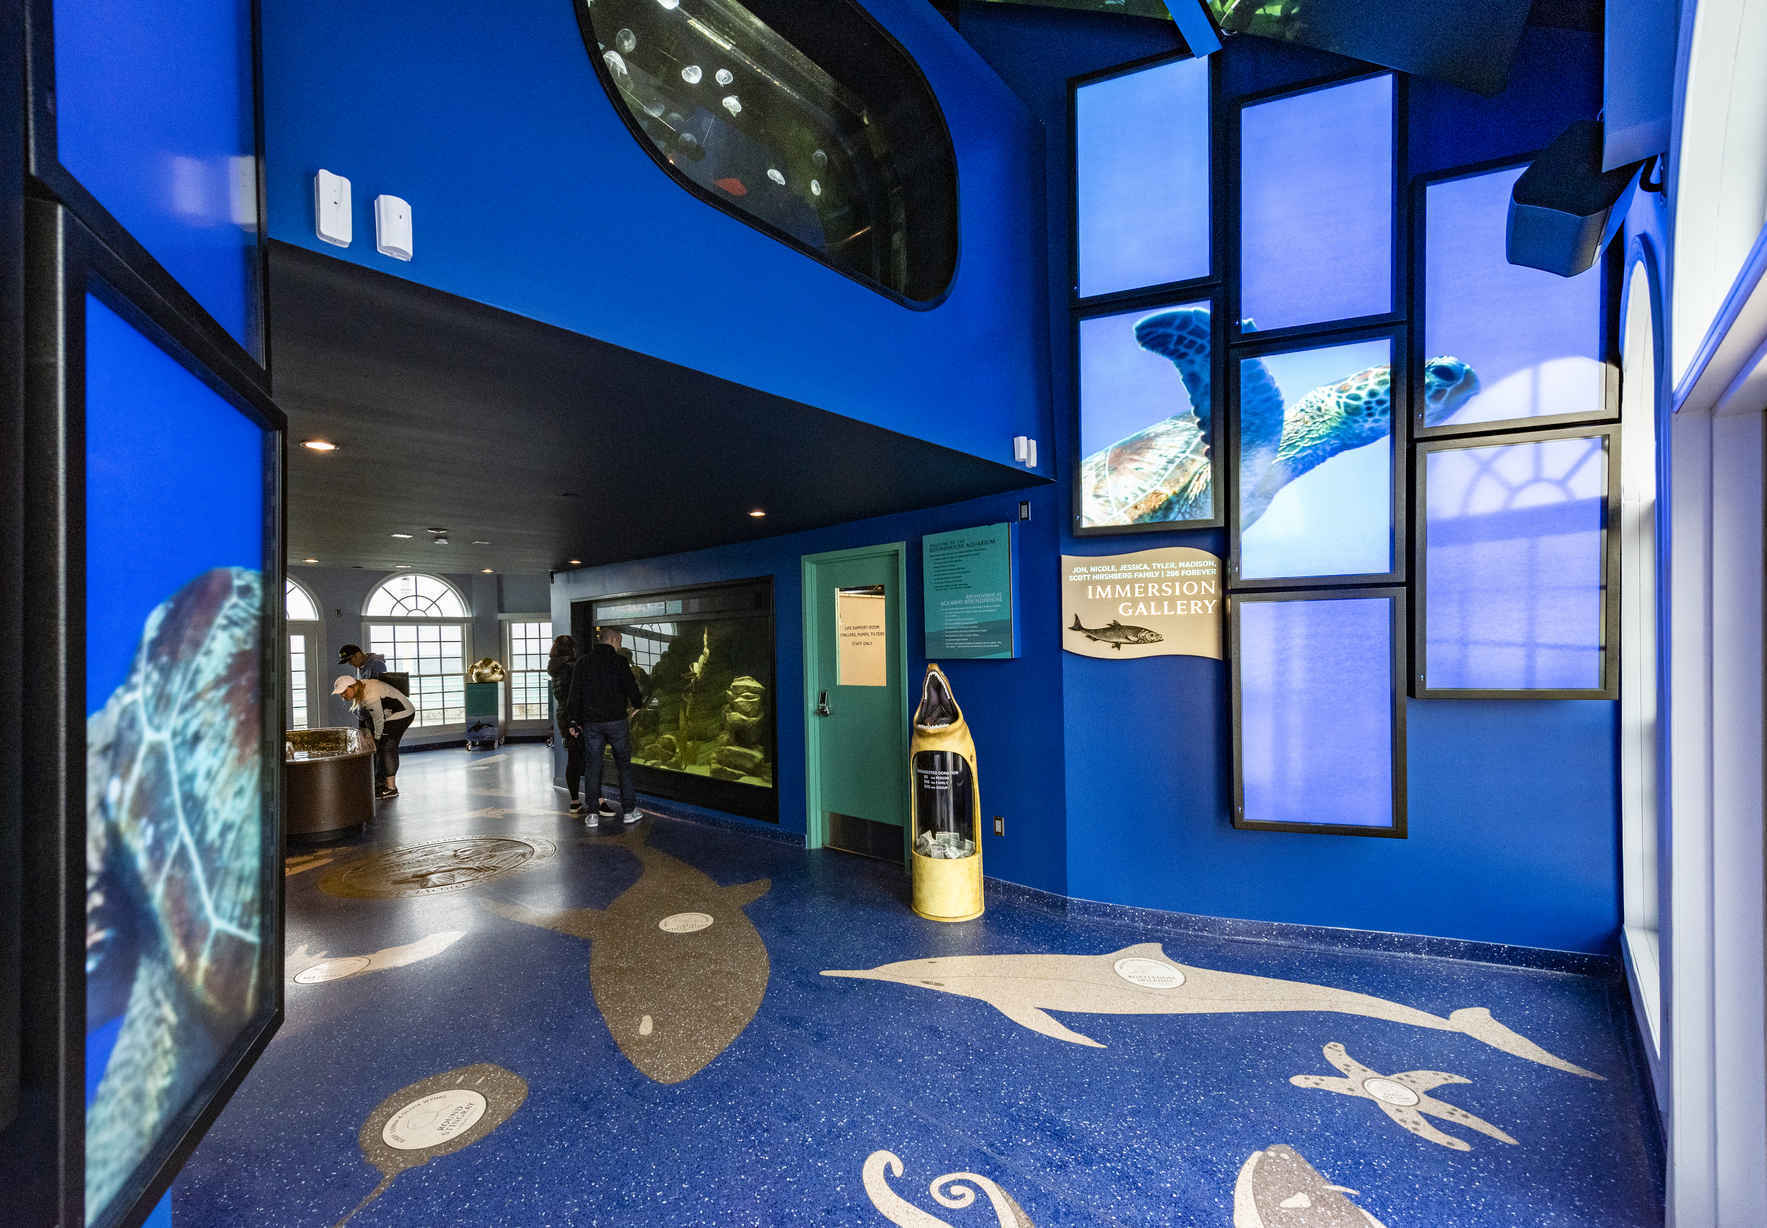 July 10 - Reserve your free entry to the Roundhouse Aquarium image